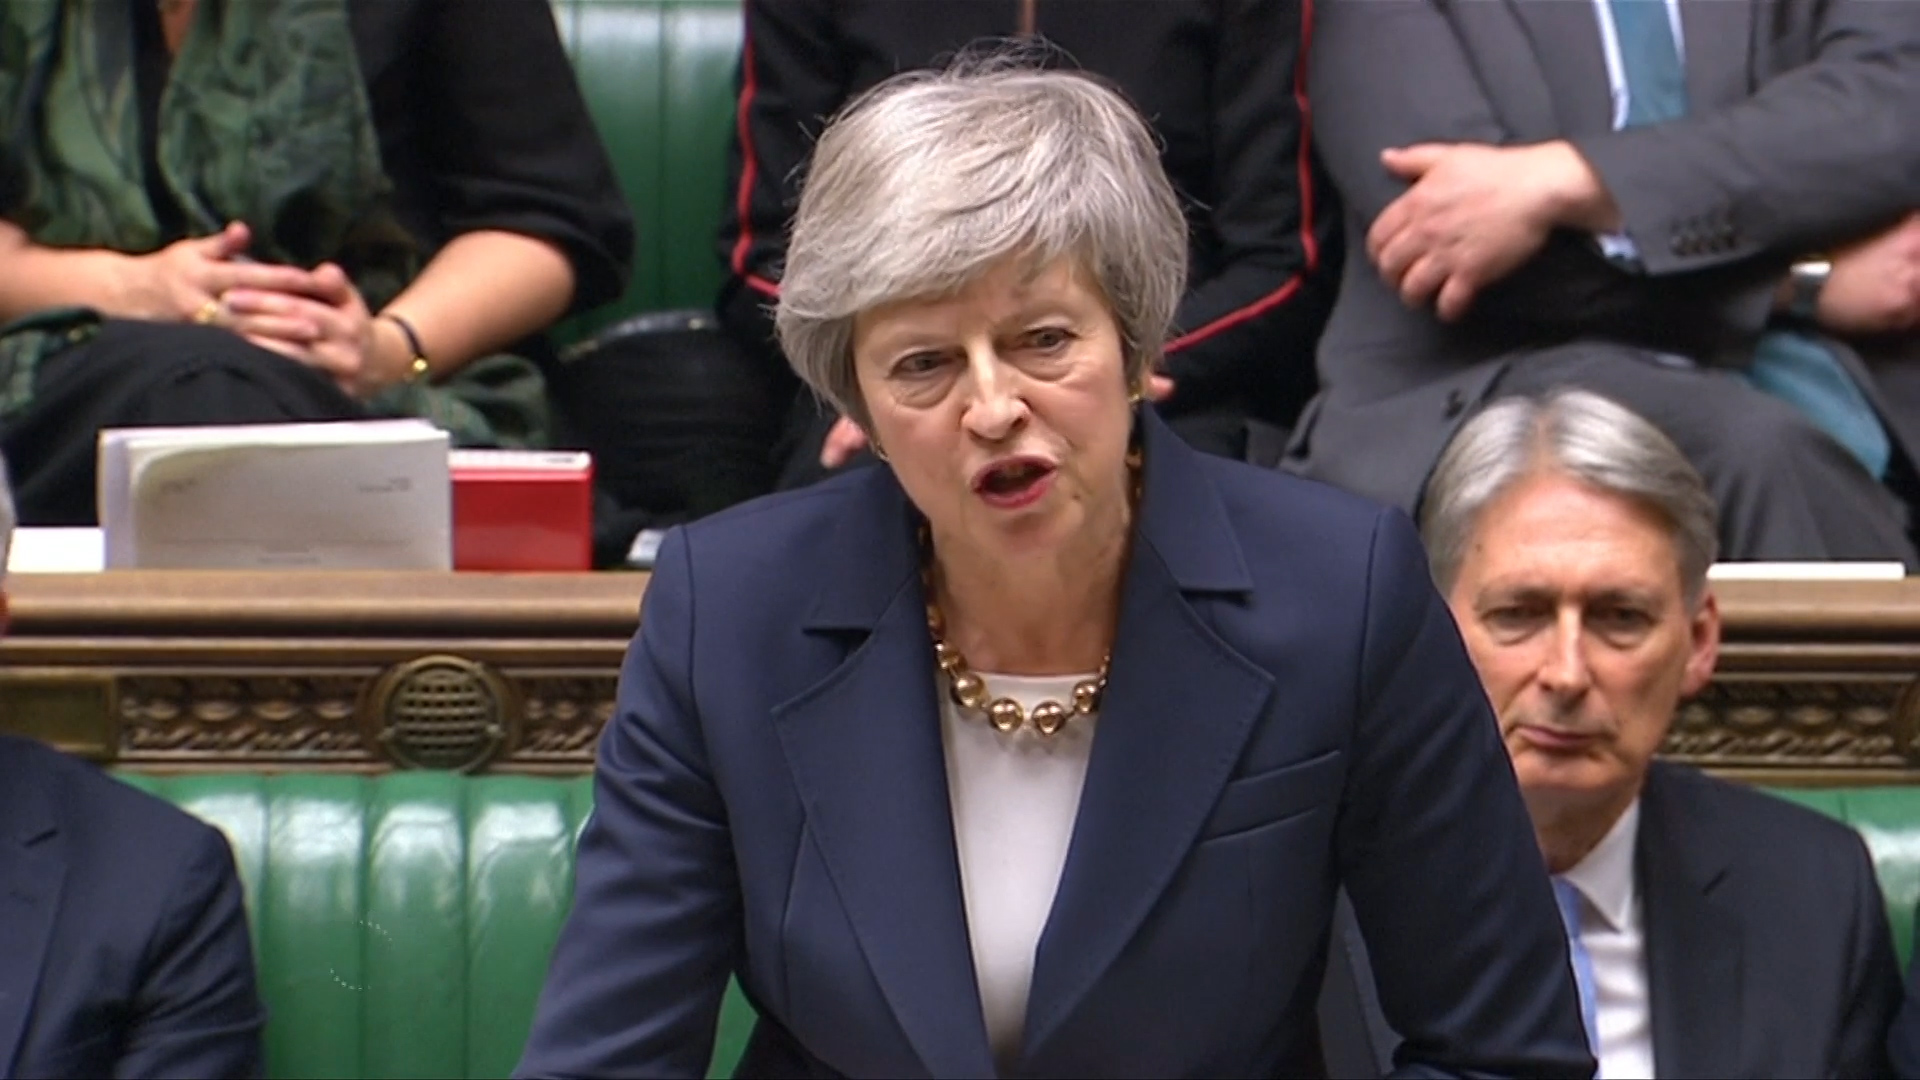 May laughed at after she confirms last-minute delay of historic Brexit vote